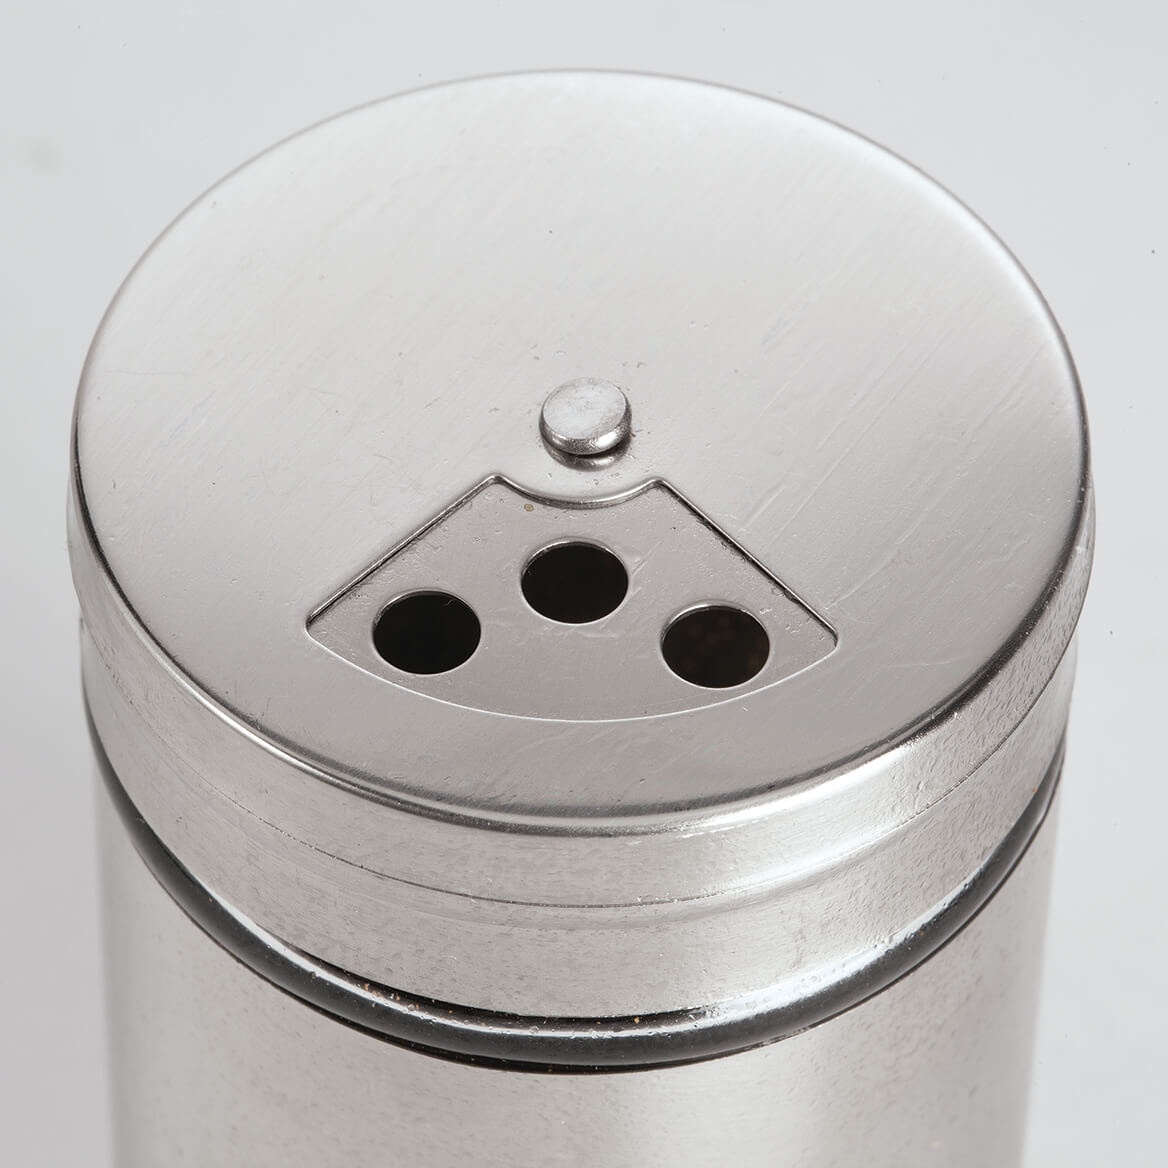 Stainless Steel Spice Jar-371391